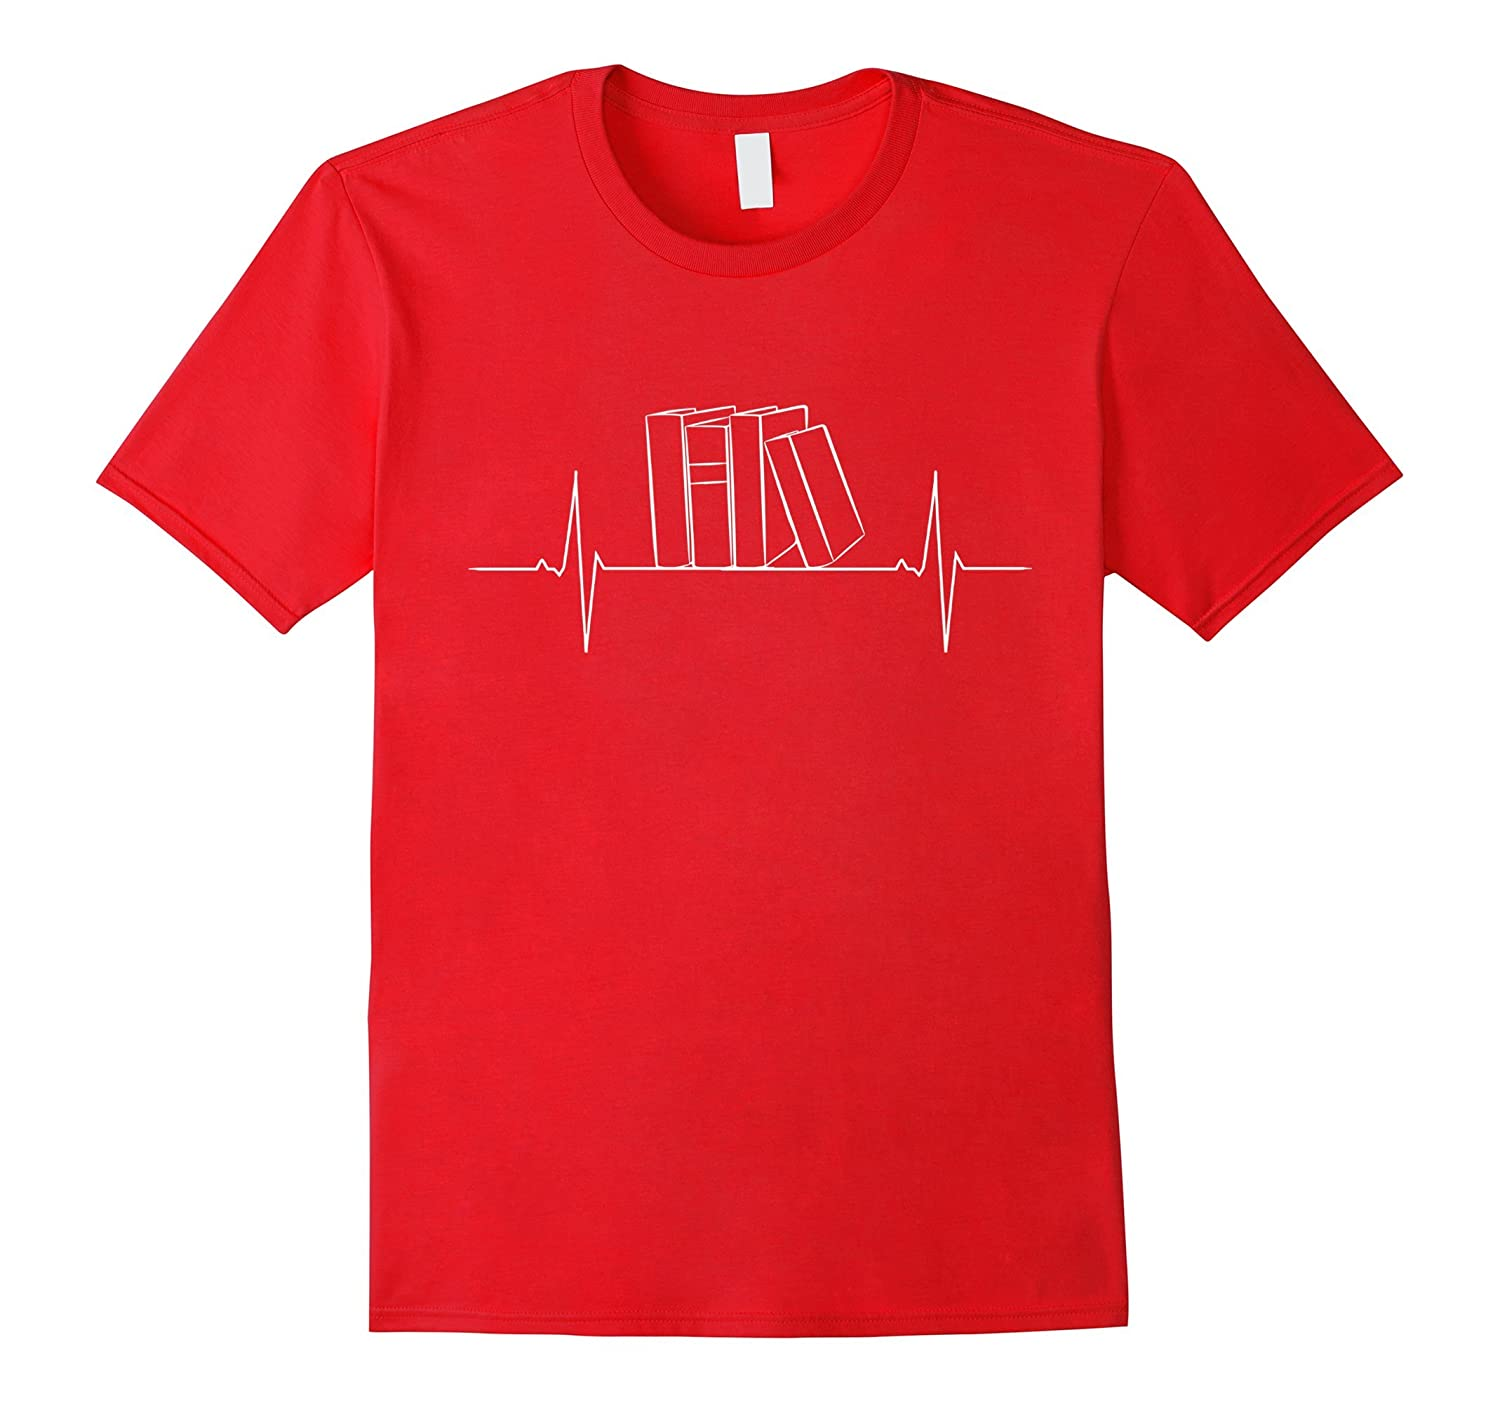 Book Heartbeat - Funny T shirts WomenMenKids Reading Fans-CD